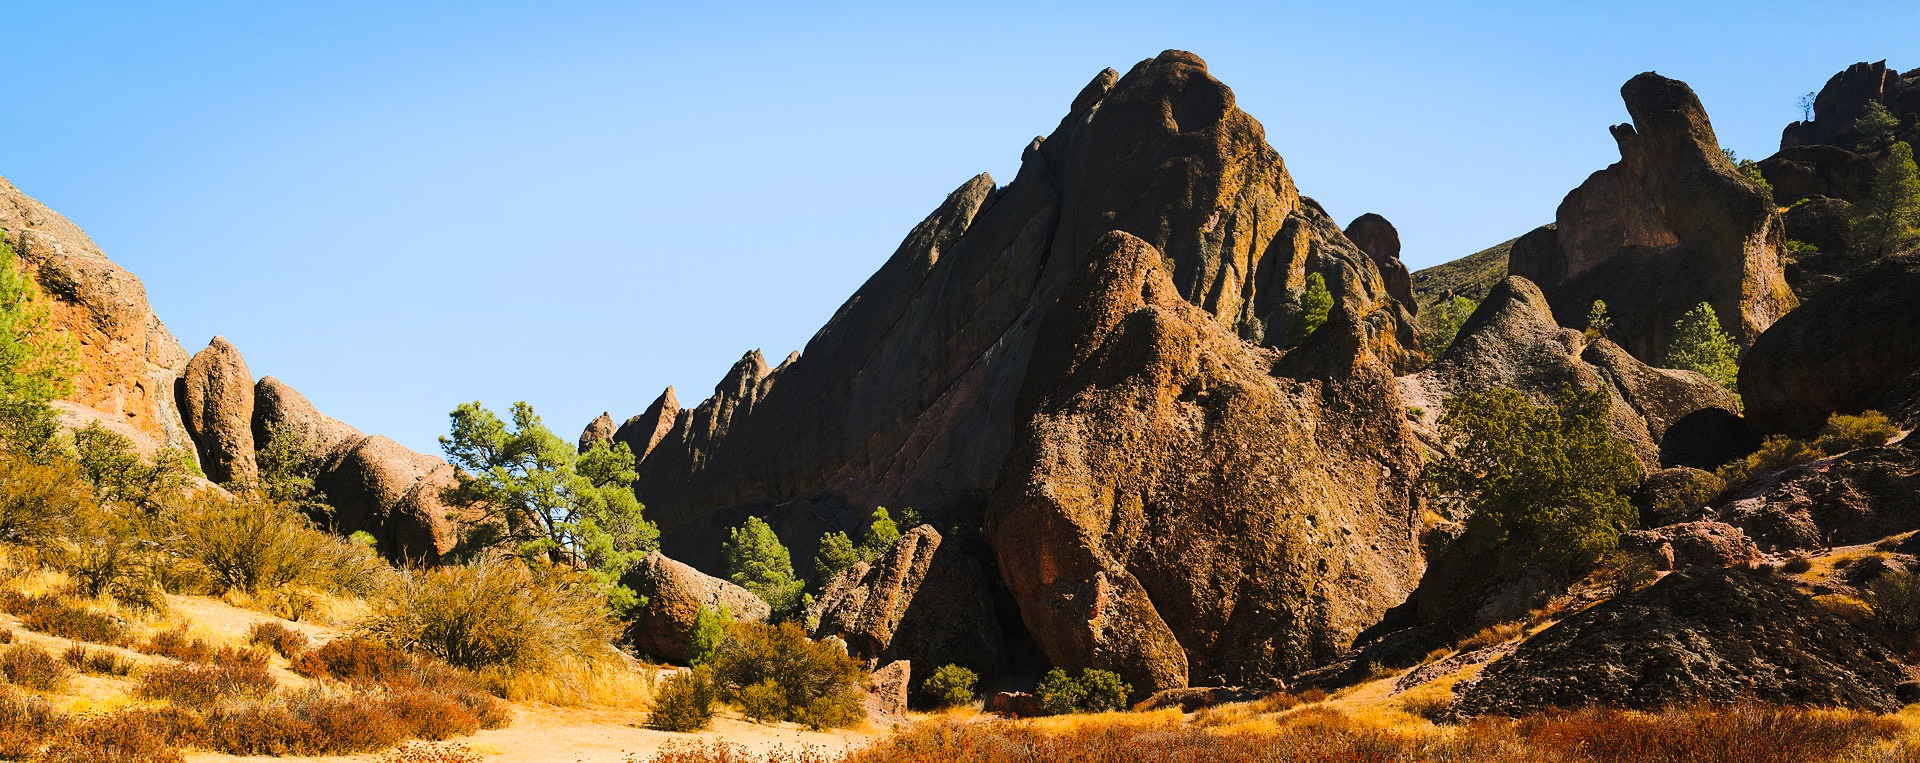 Rock Formations At Pinnacles National Park, Photo: Brocken Inaglory